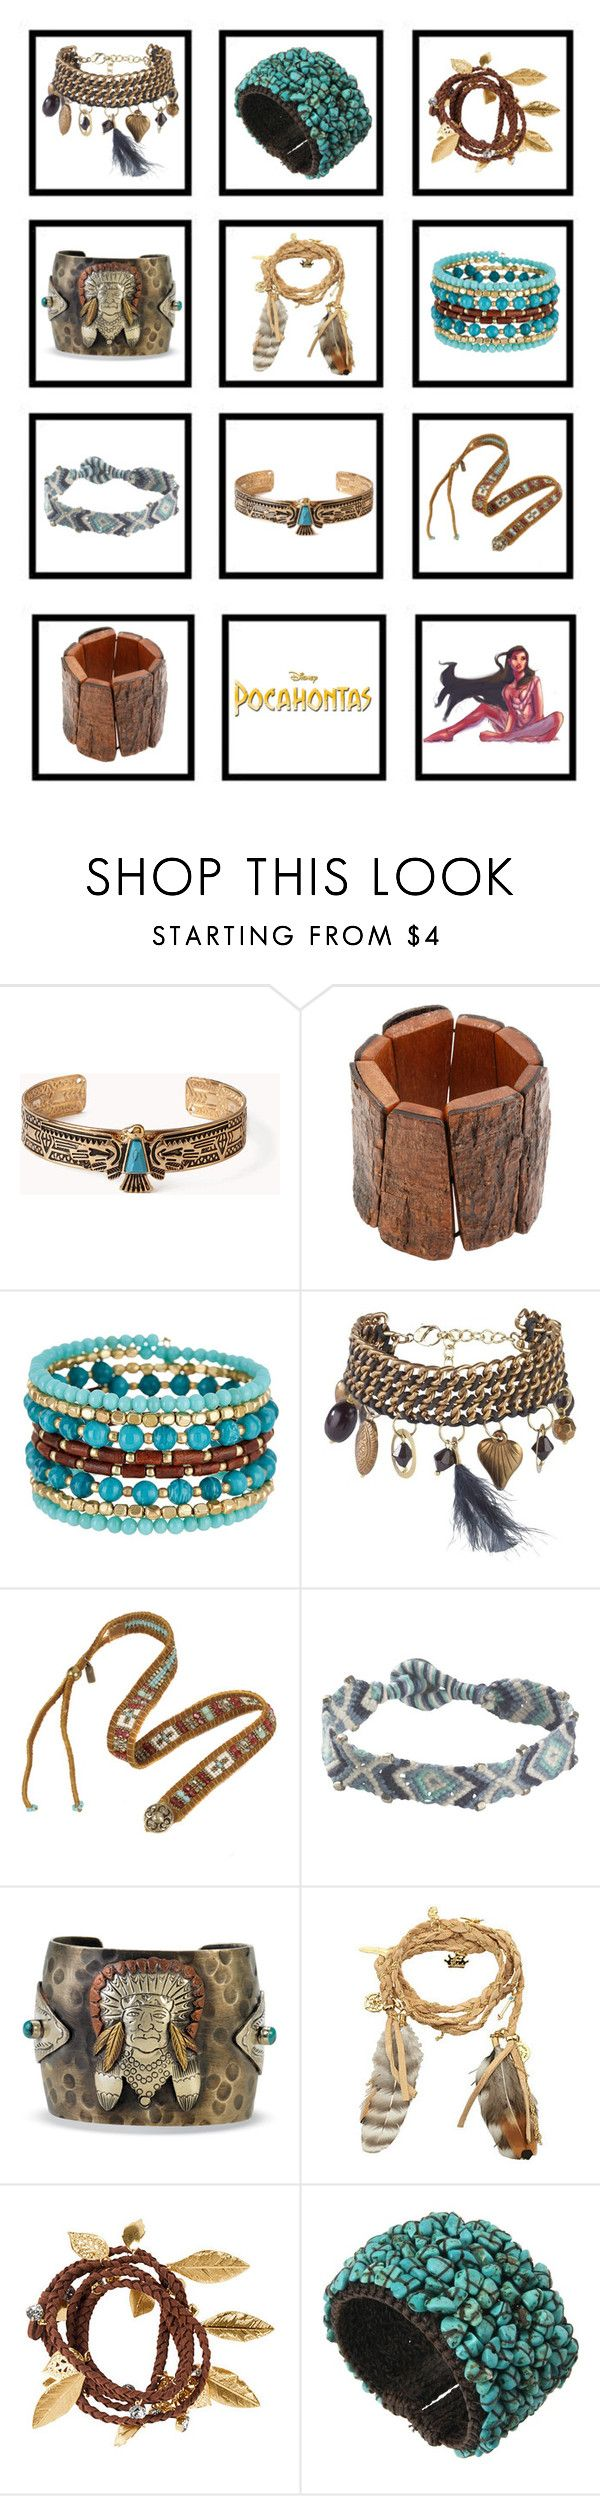 """Pocahontas Bracelets"" by tempermental-teen ❤ liked on Polyvore featuring Forever 21, Kenneth Jay Lane, Madison Parker, Joe Browns, Fat Face, Disney Couture and H&M"